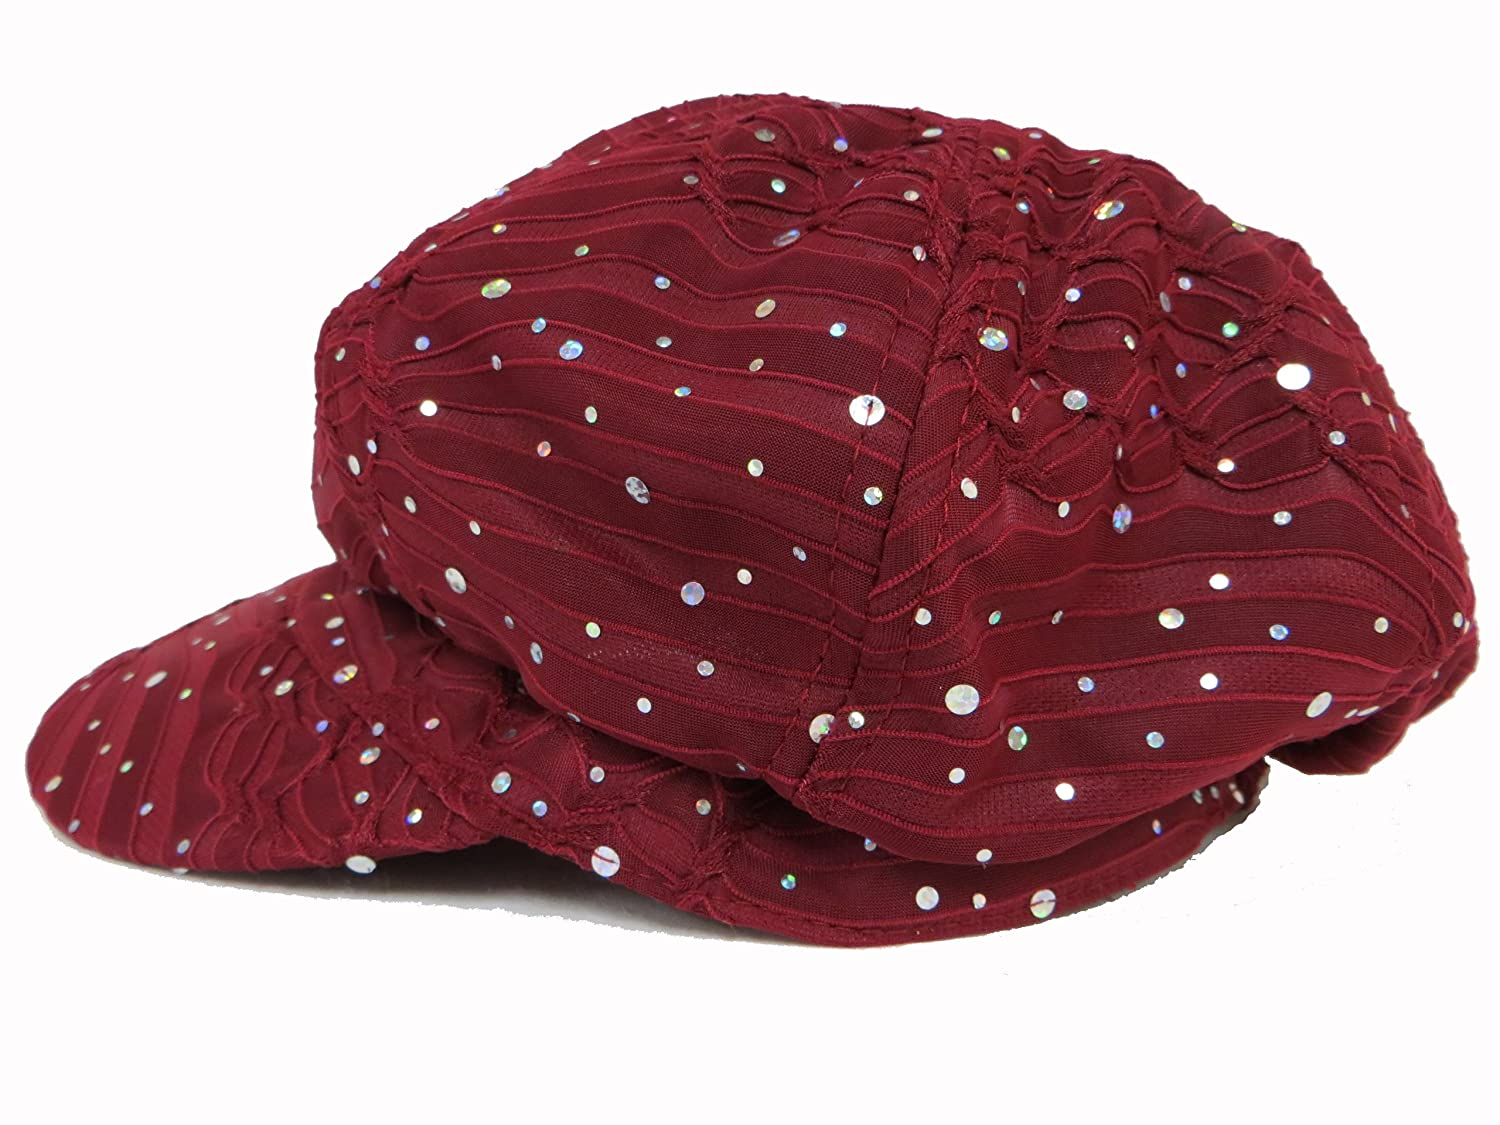 Sparkle Glitter Newsboy Cap   Burgundy at Amazon Women s Clothing store   Hats For Cancer Patients 5c03cb8da2c